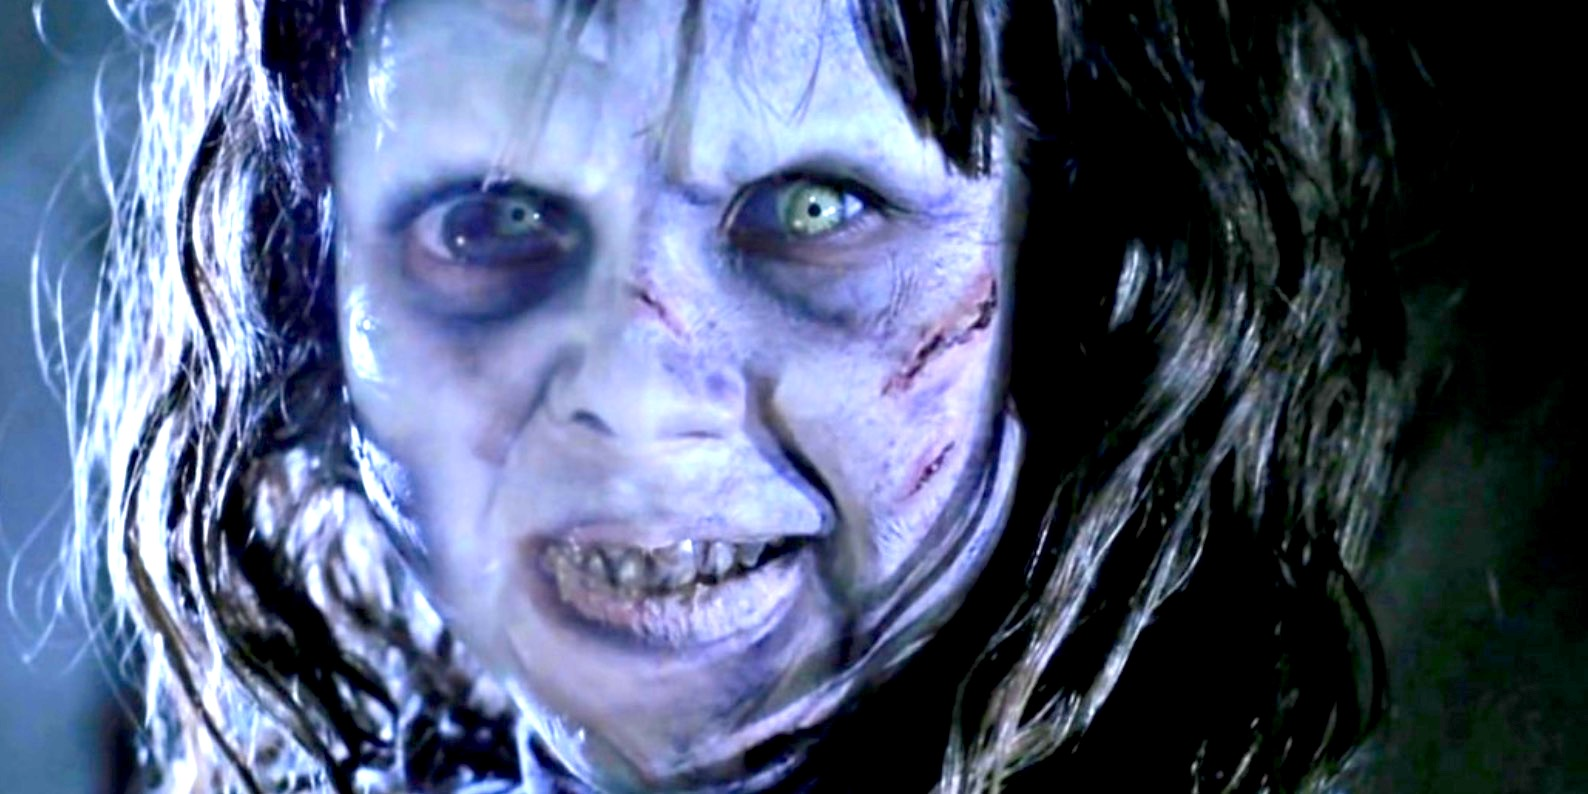 The Exorcist, horror movie, movie monster, movies